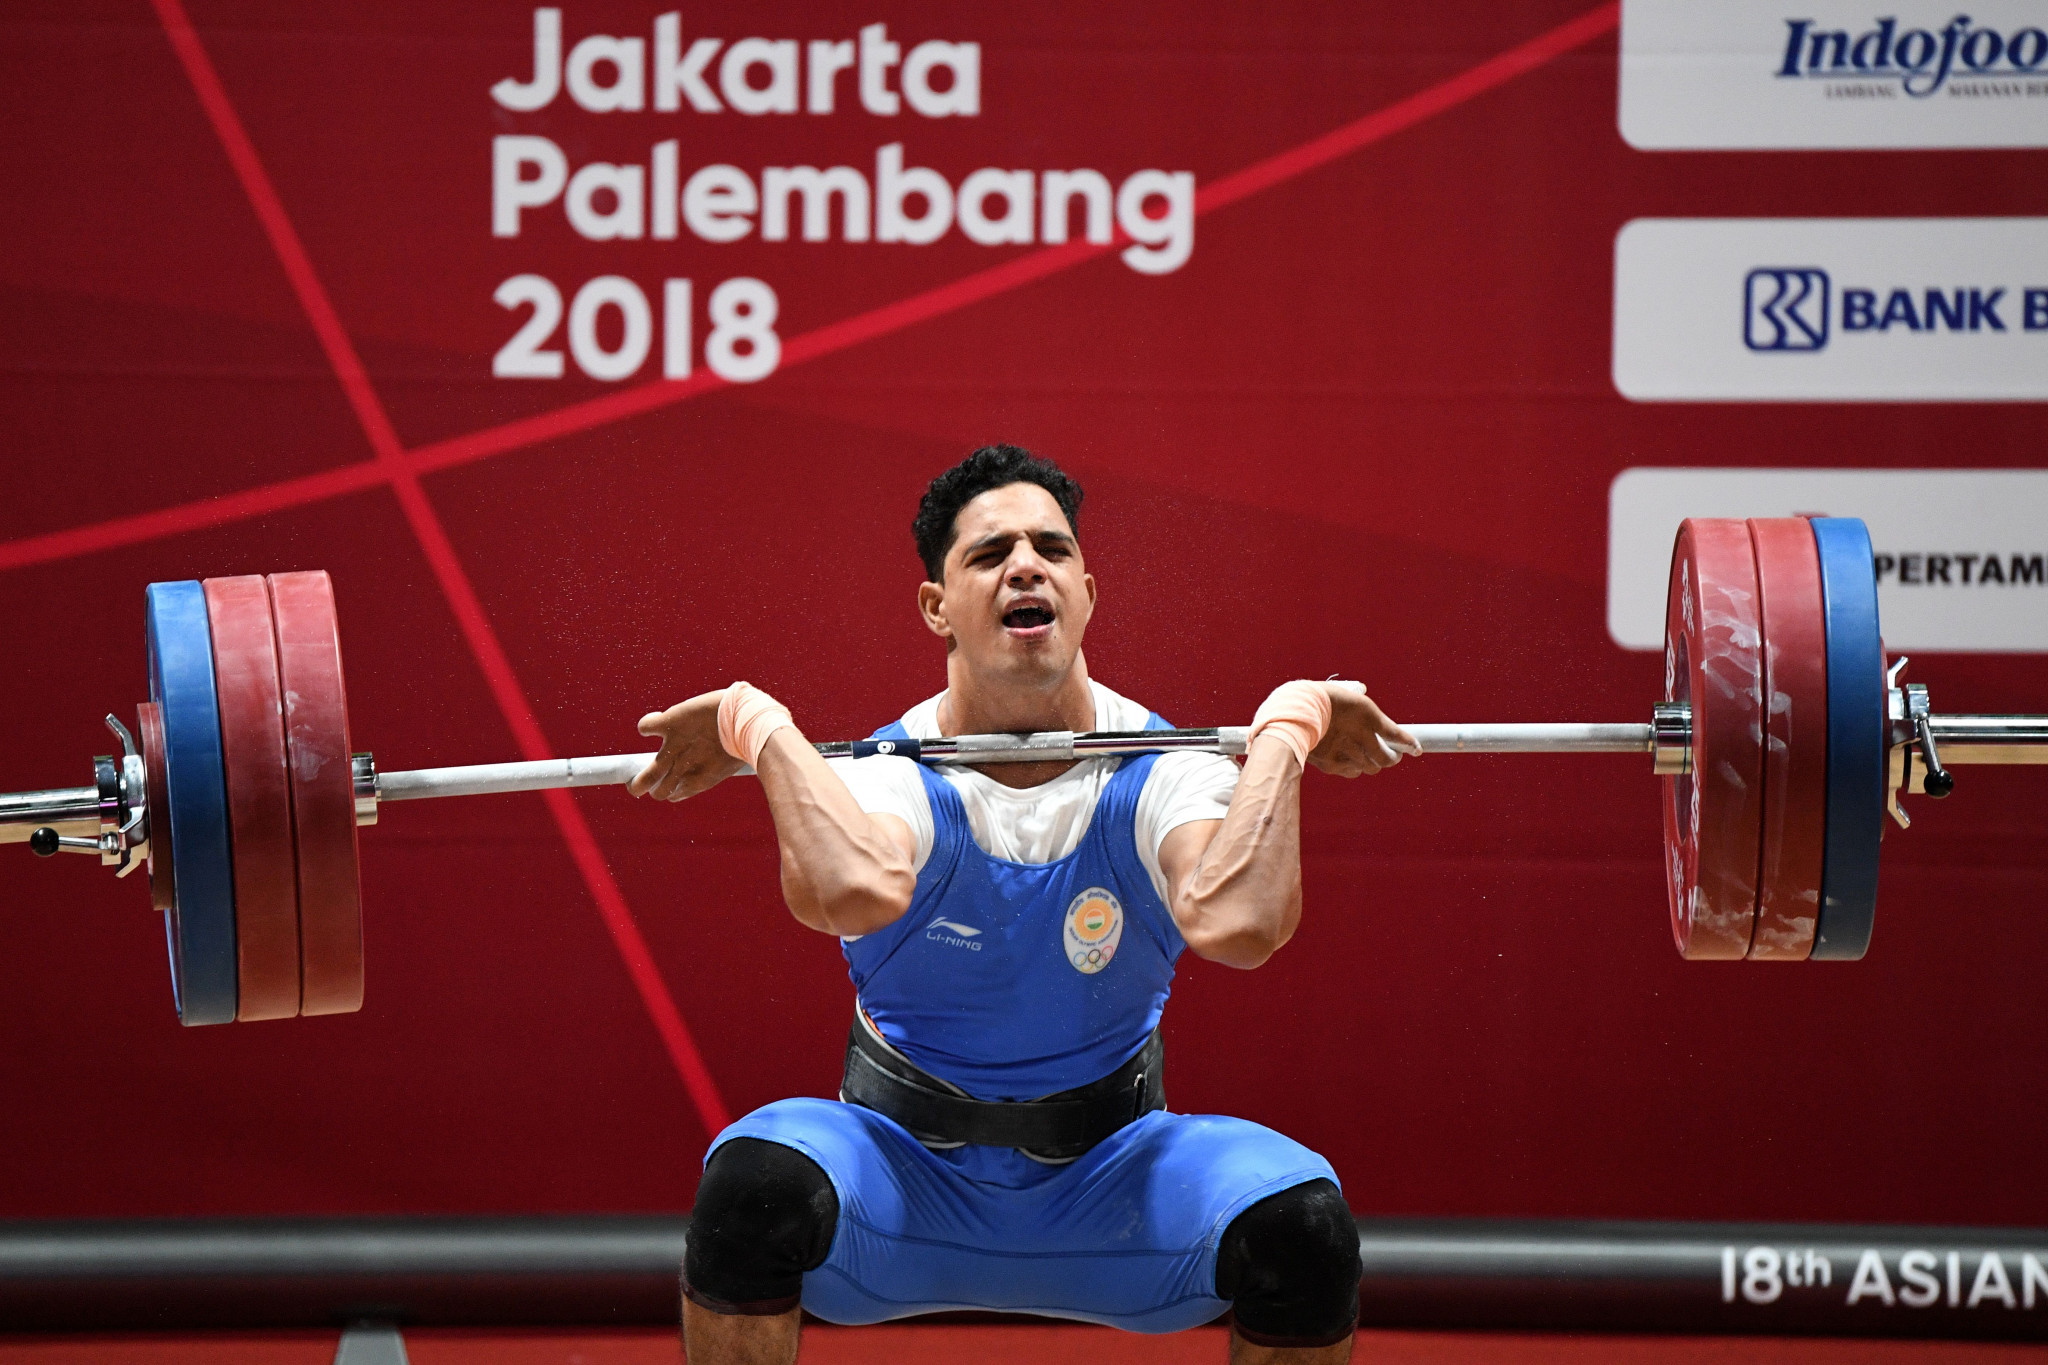 The Indian Weightlifting Federation hope the proposals will enable athletes to resume training ©Getty Images